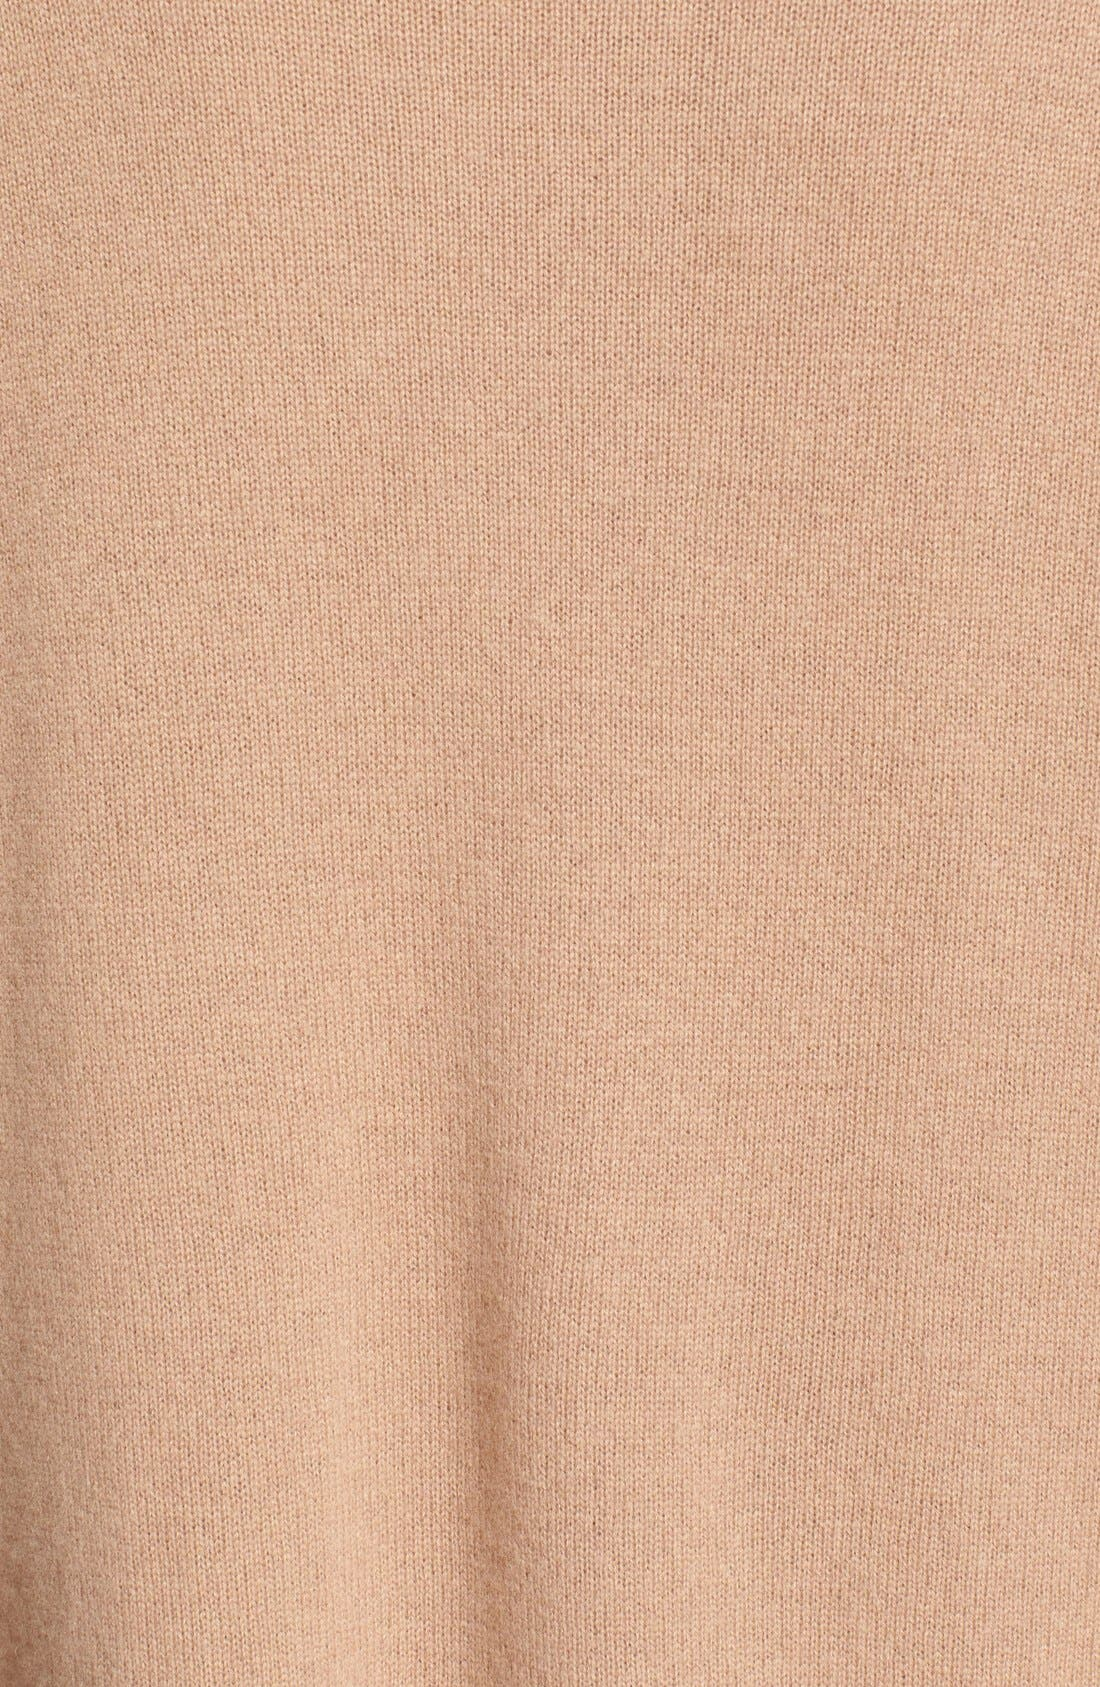 Alternate Image 5  - Equipment 'Oscar' Cashmere Turtleneck